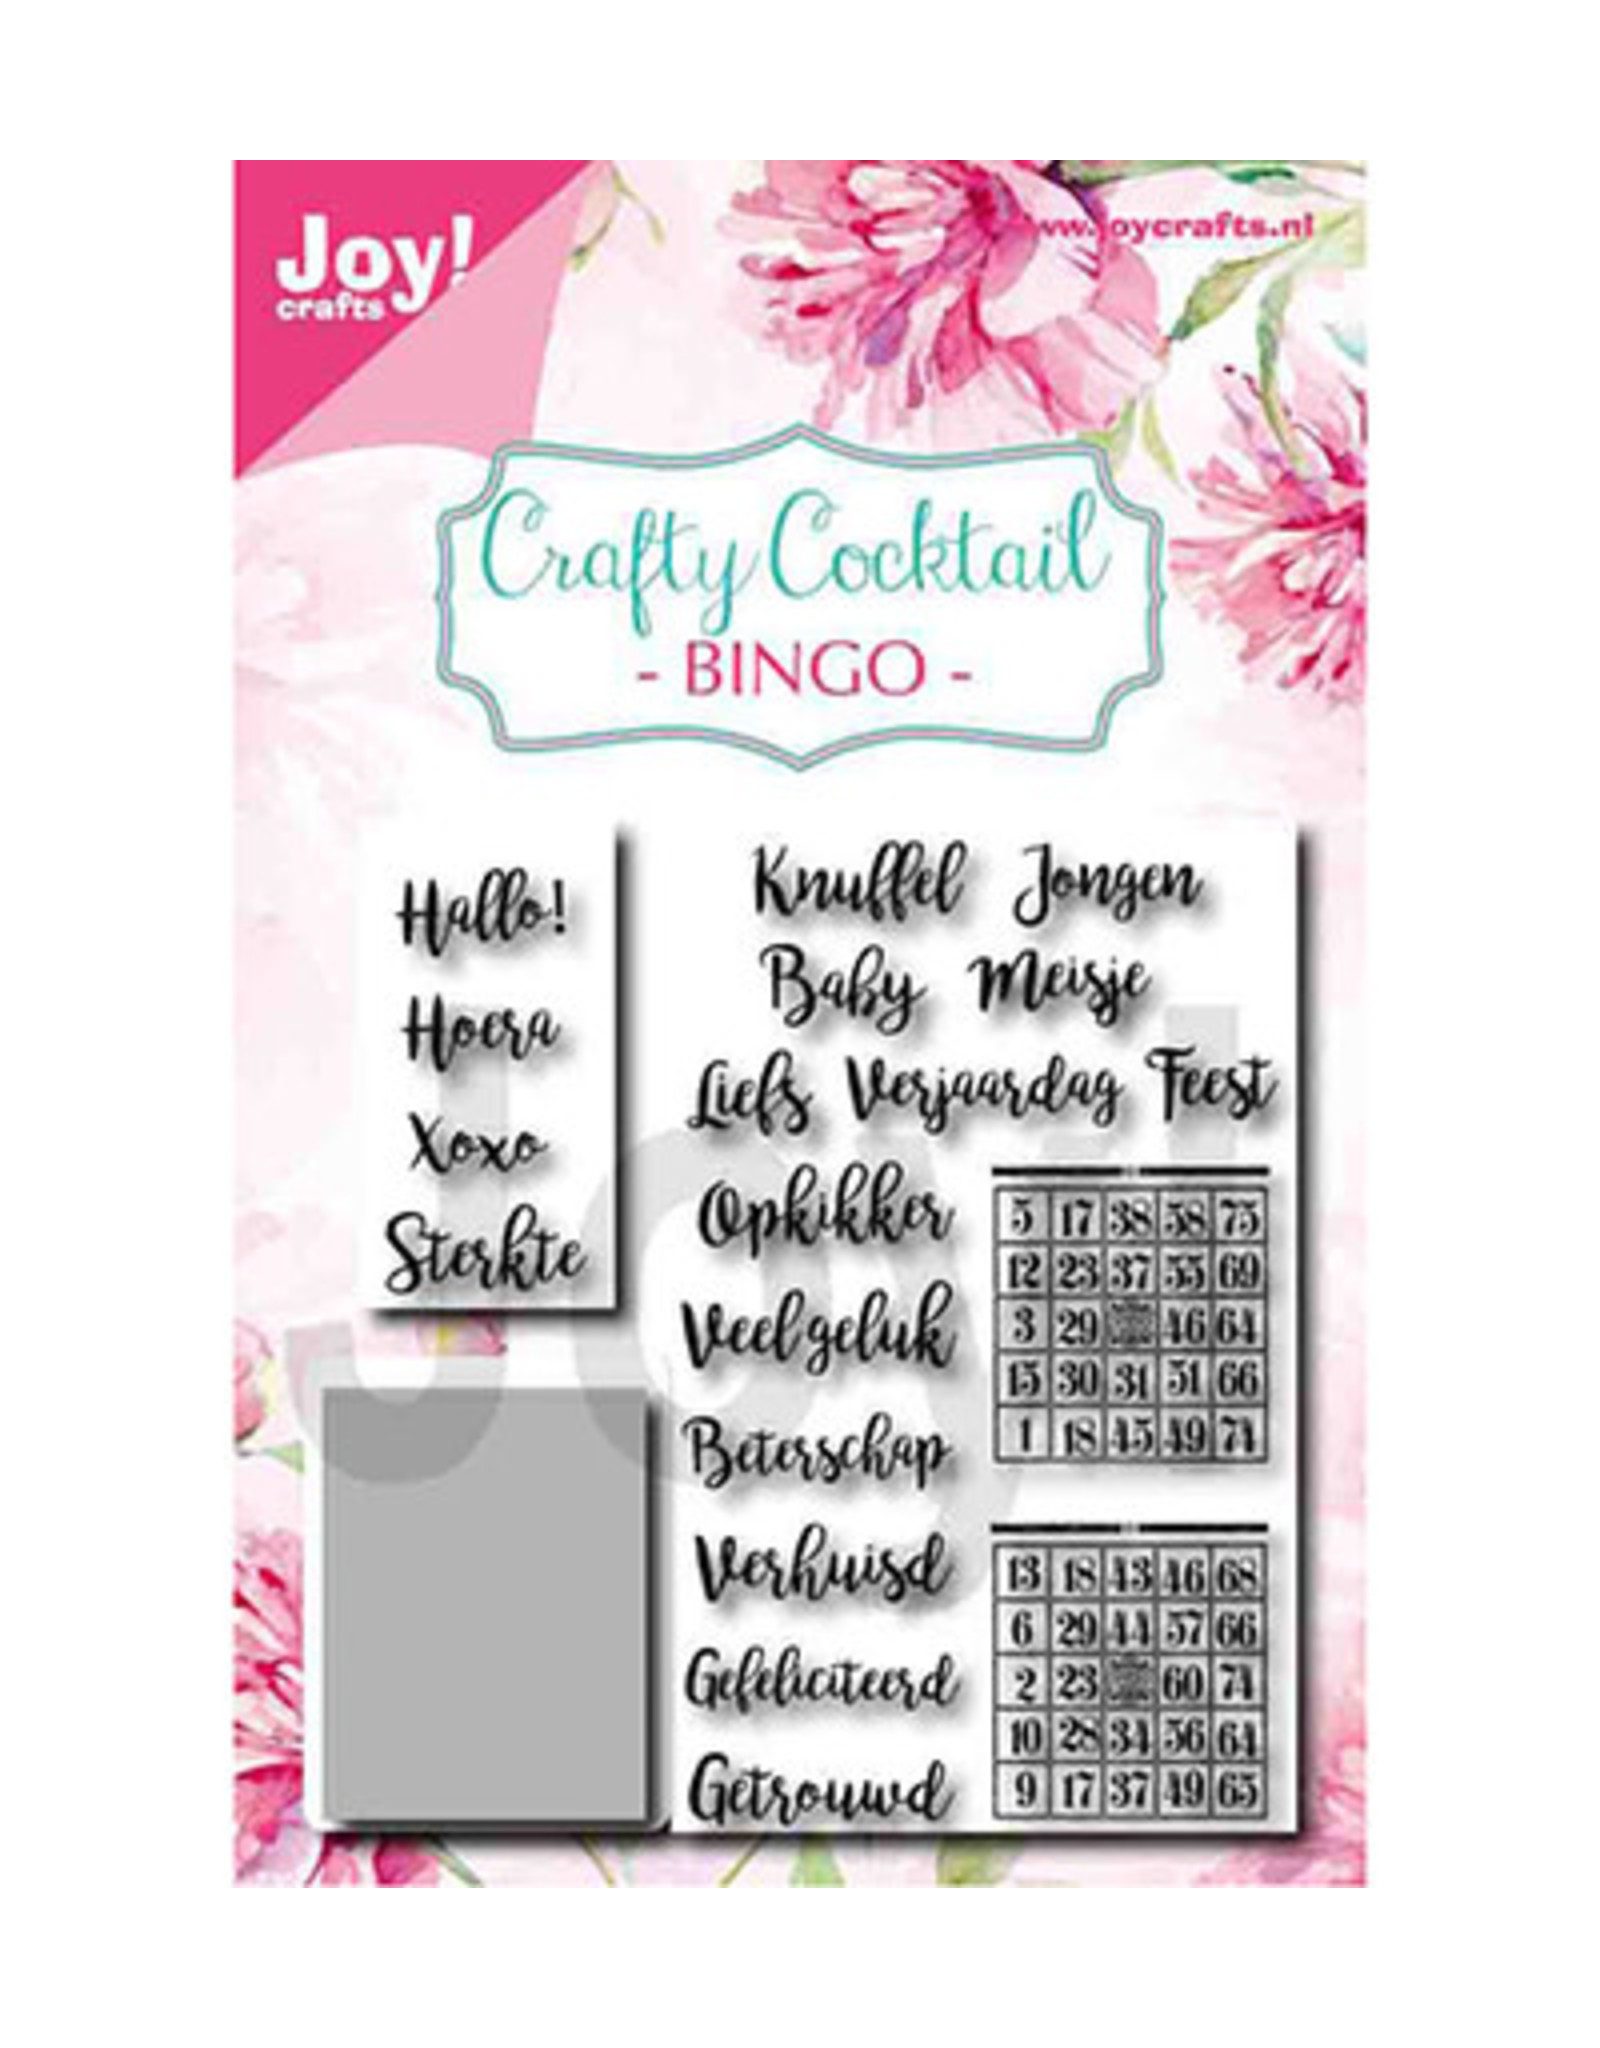 Joy Craft Joy Craft Crafty Cocktail – Bingo 6004/0039